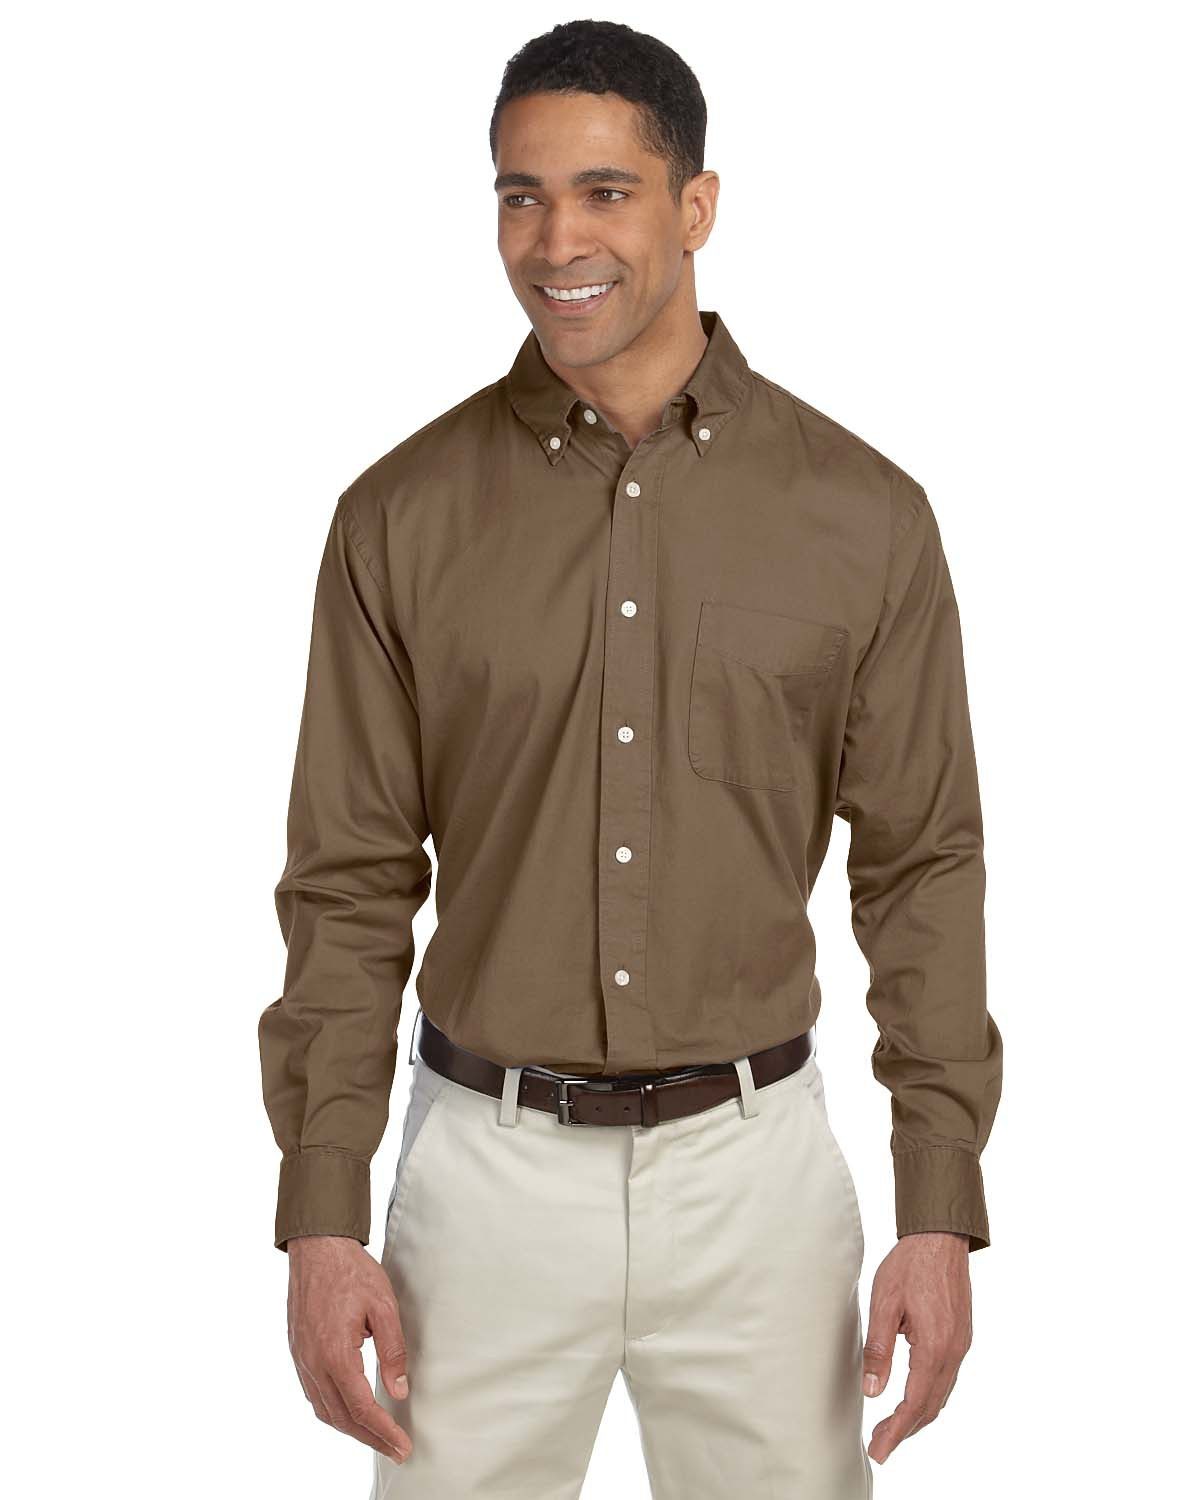 CH500 Chestnut Hill Men's 32 Singles Long-Sleeve Twill